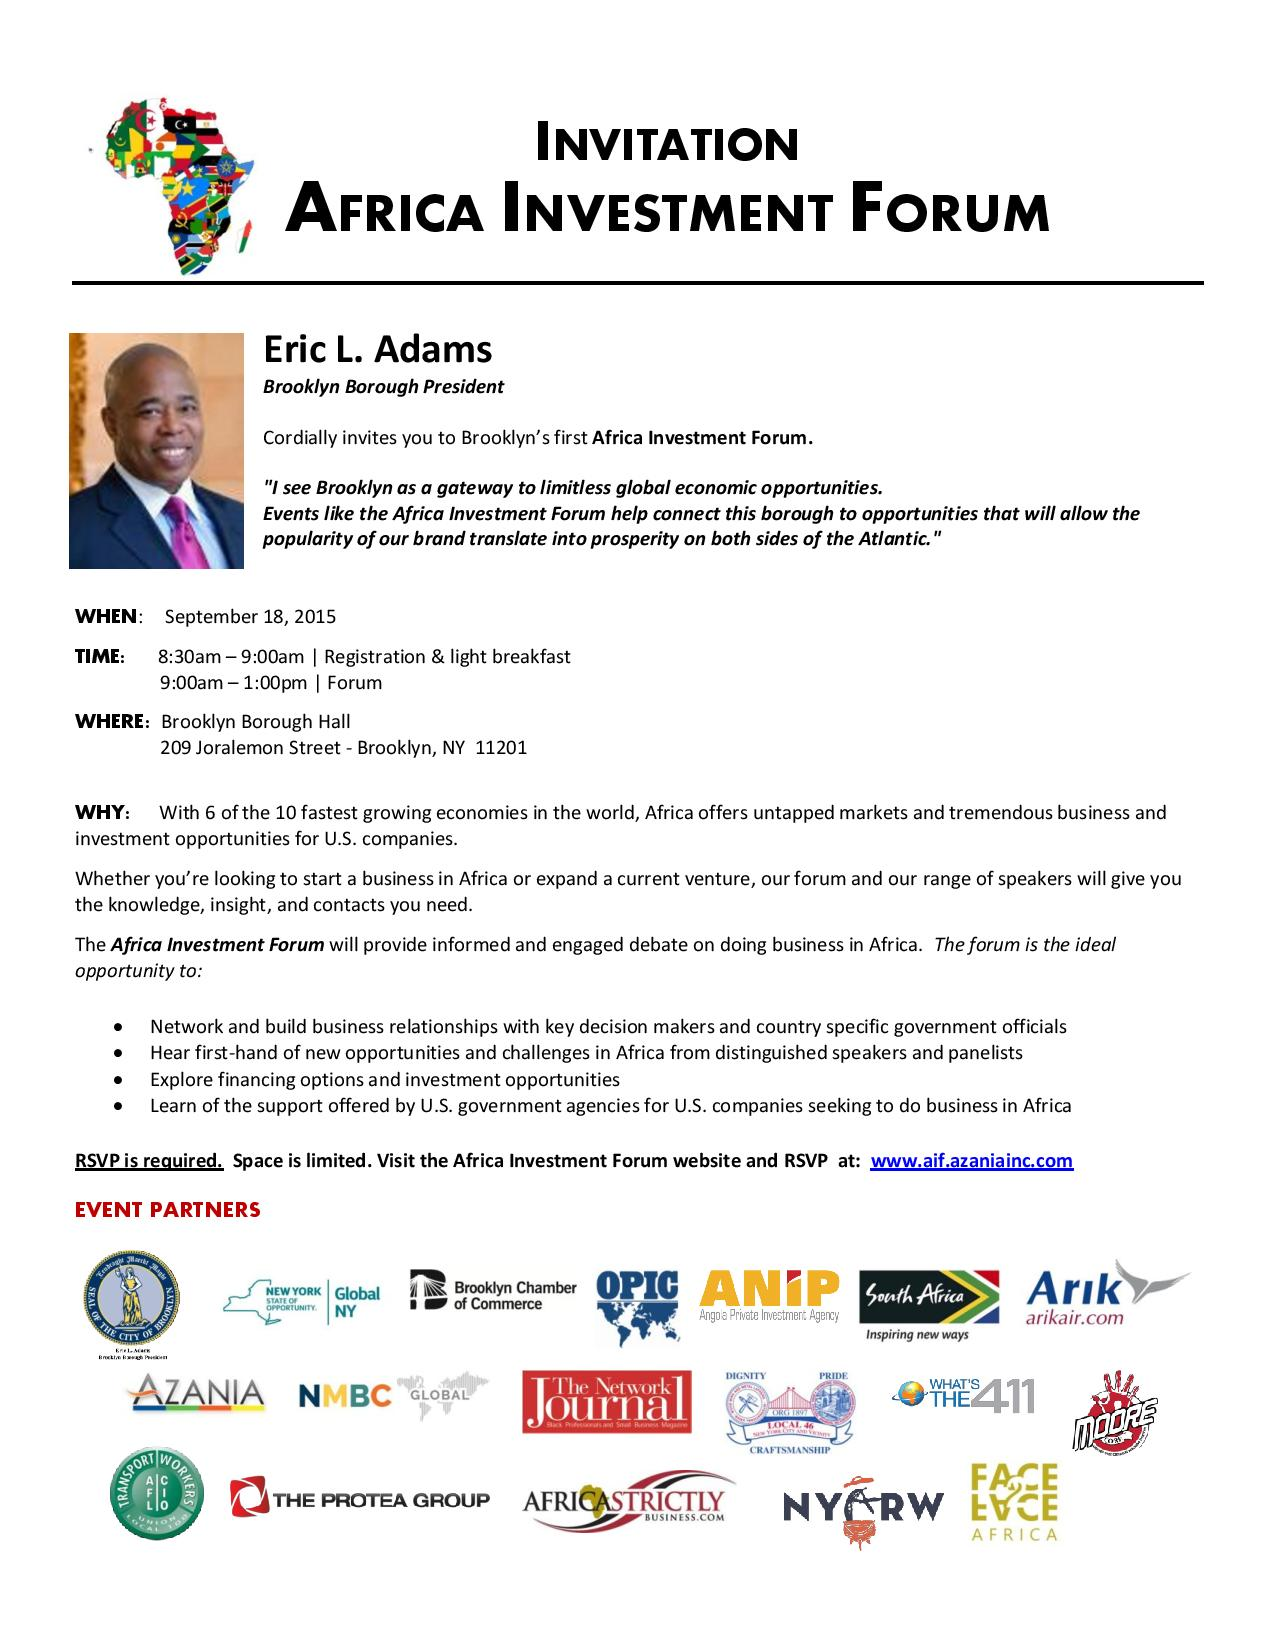 Africa Investment Forum - September 18, 2015